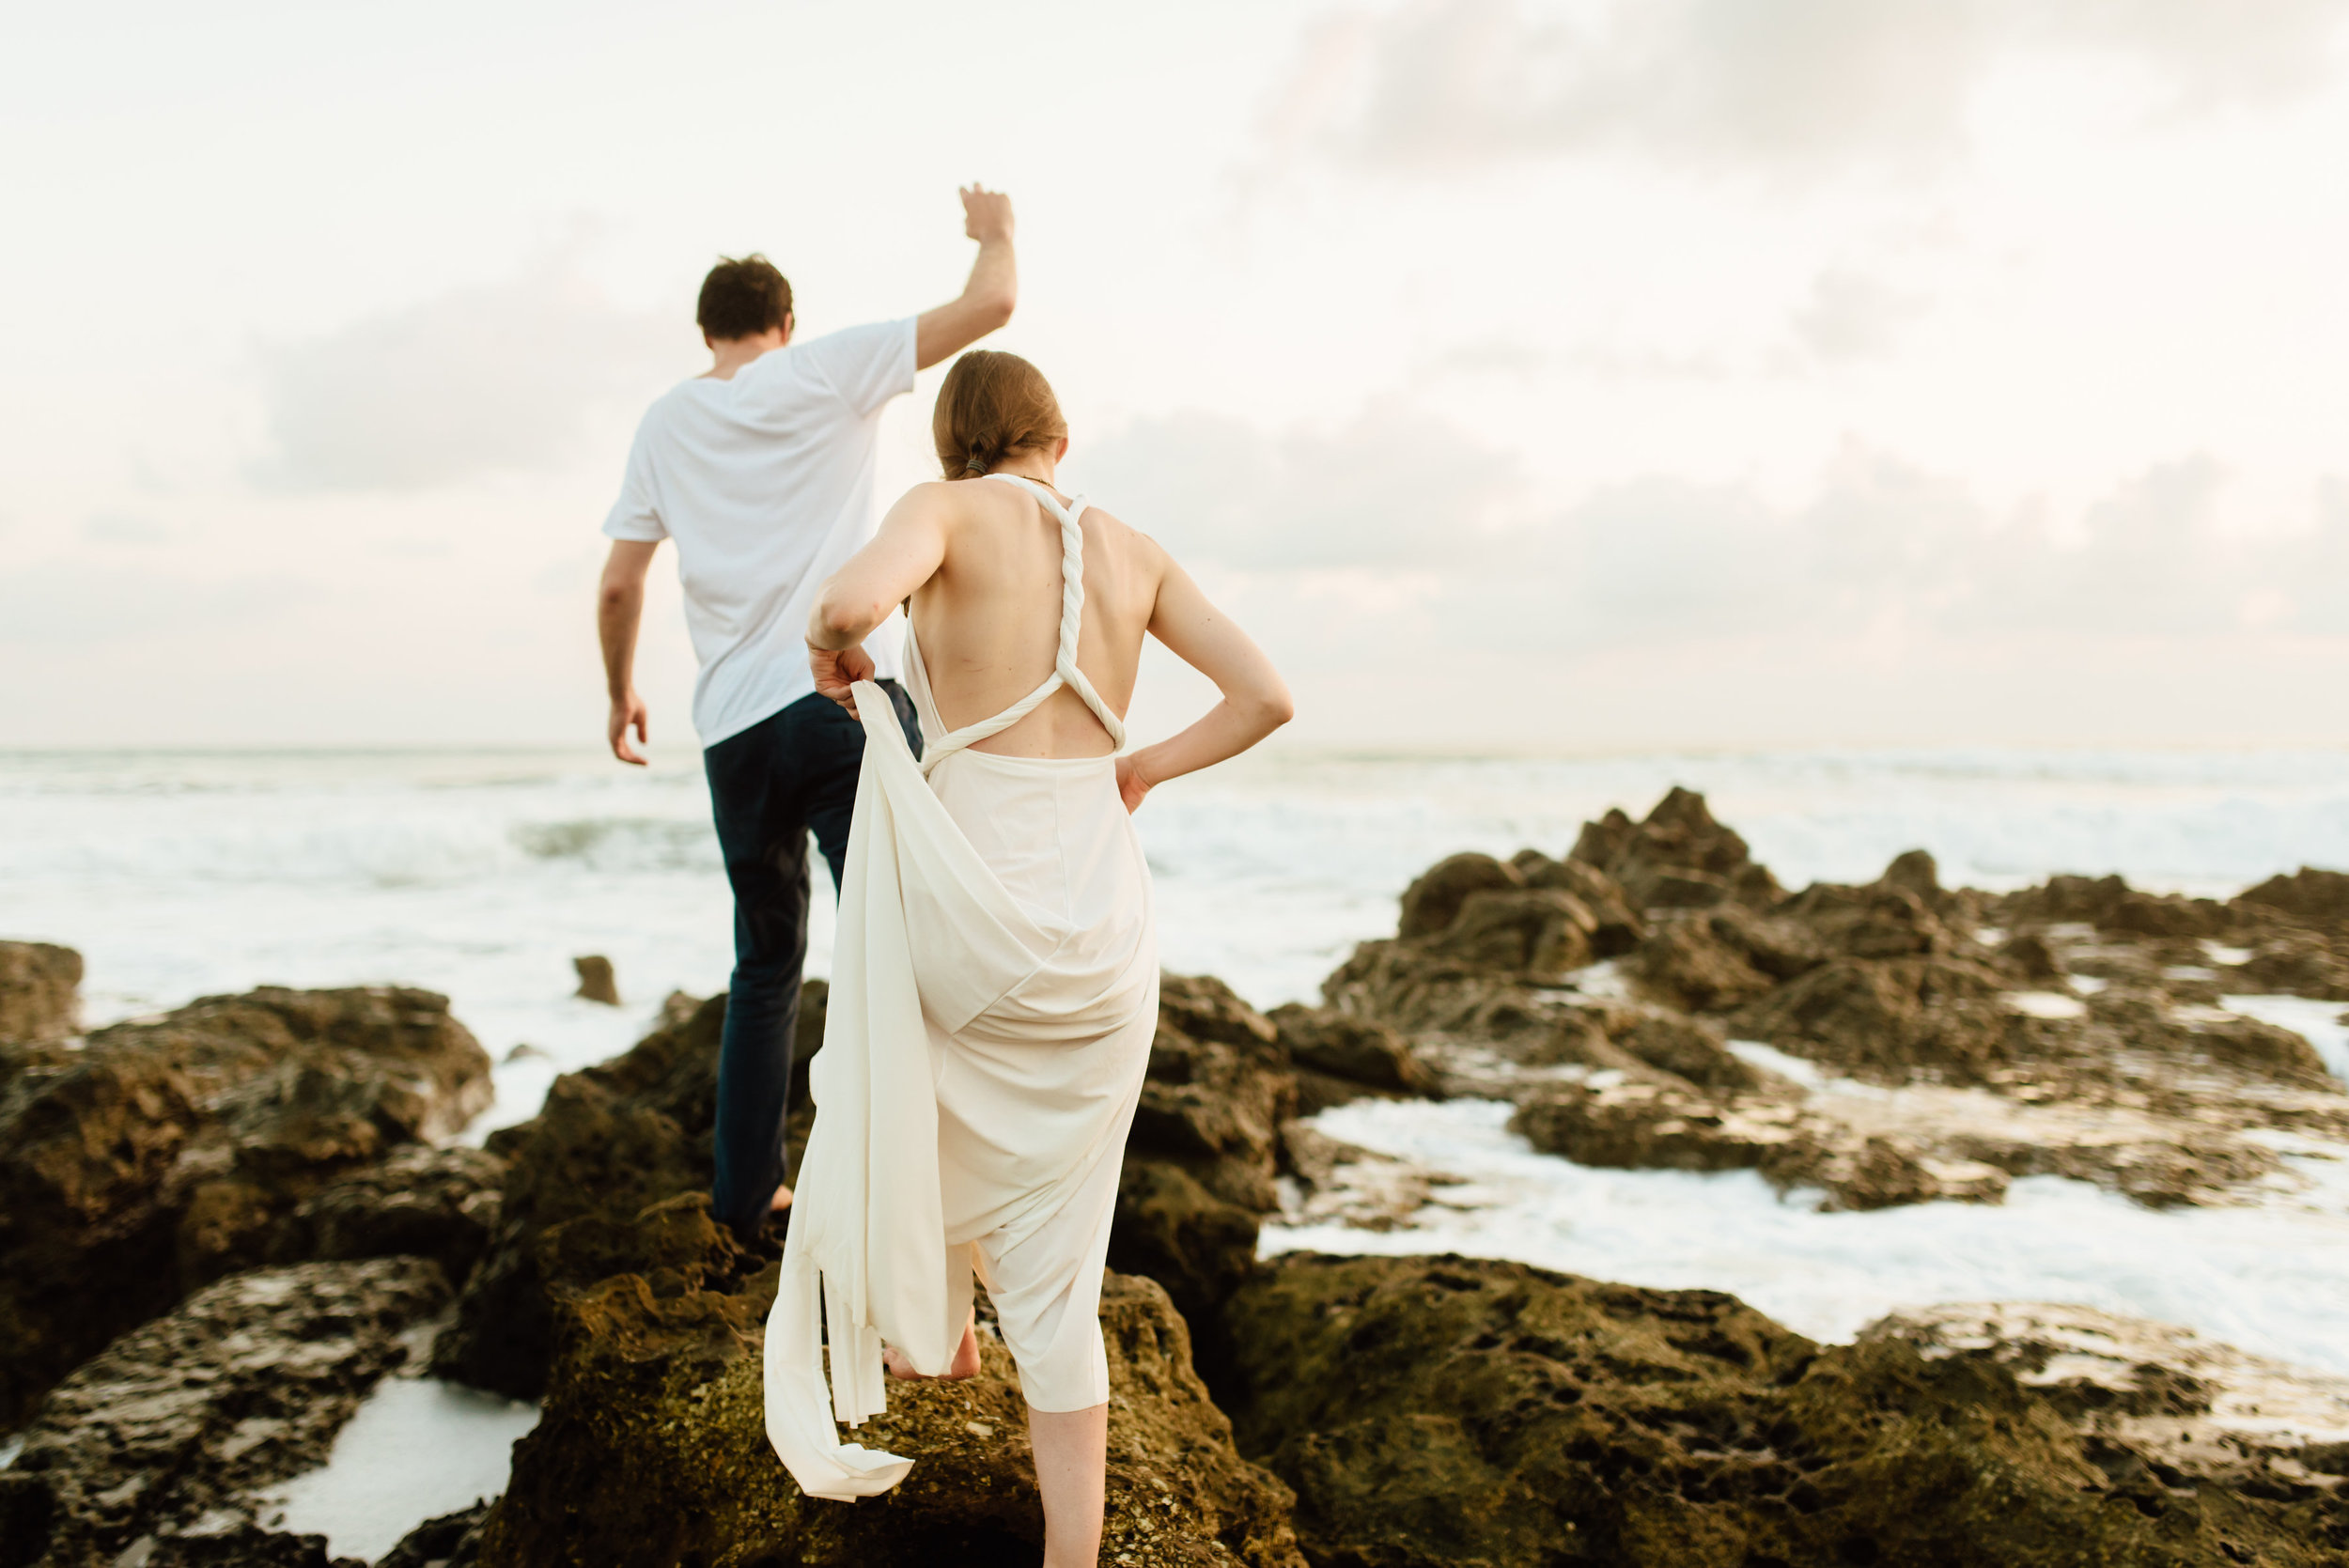 If these aren't the most breathtaking Costa Rica beach wedding photos I've ever seen I don't know what is!! Nicoya Peninsula is so magical for a destination elopement!  Destination wedding photography by intimate Costa Rica wedding photographer, Maddie Mae.